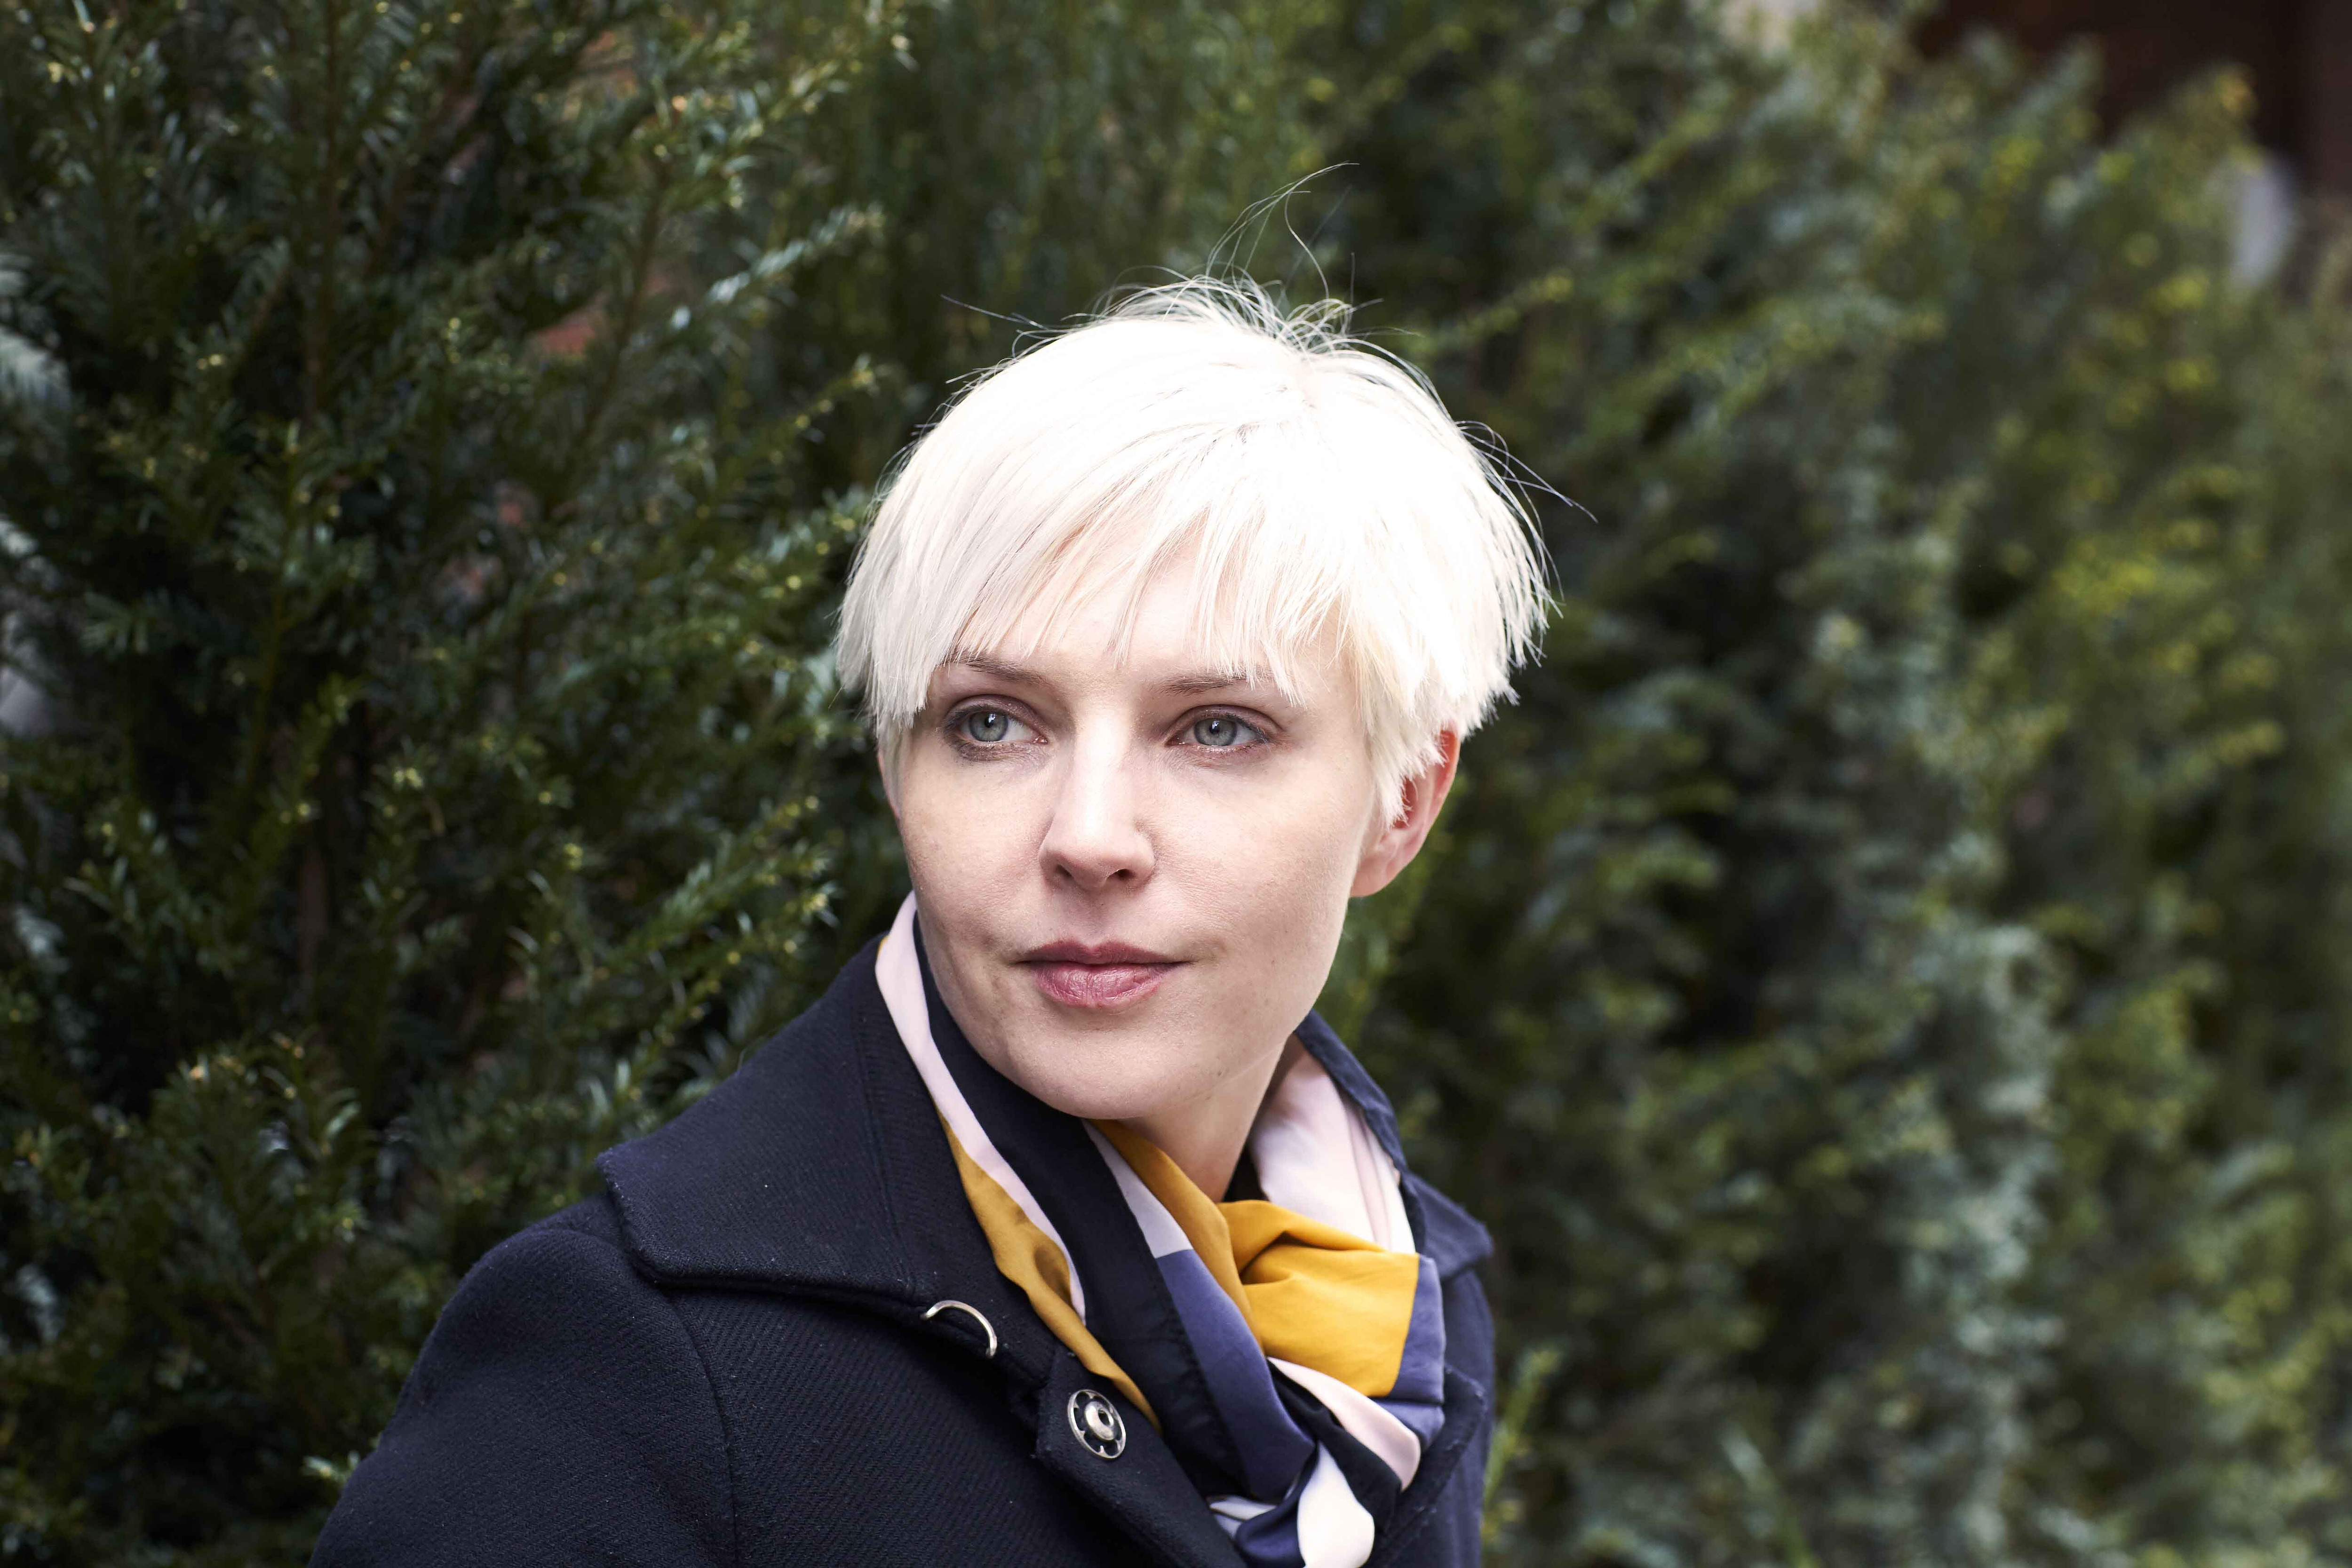 white blonde hair cropped pixie